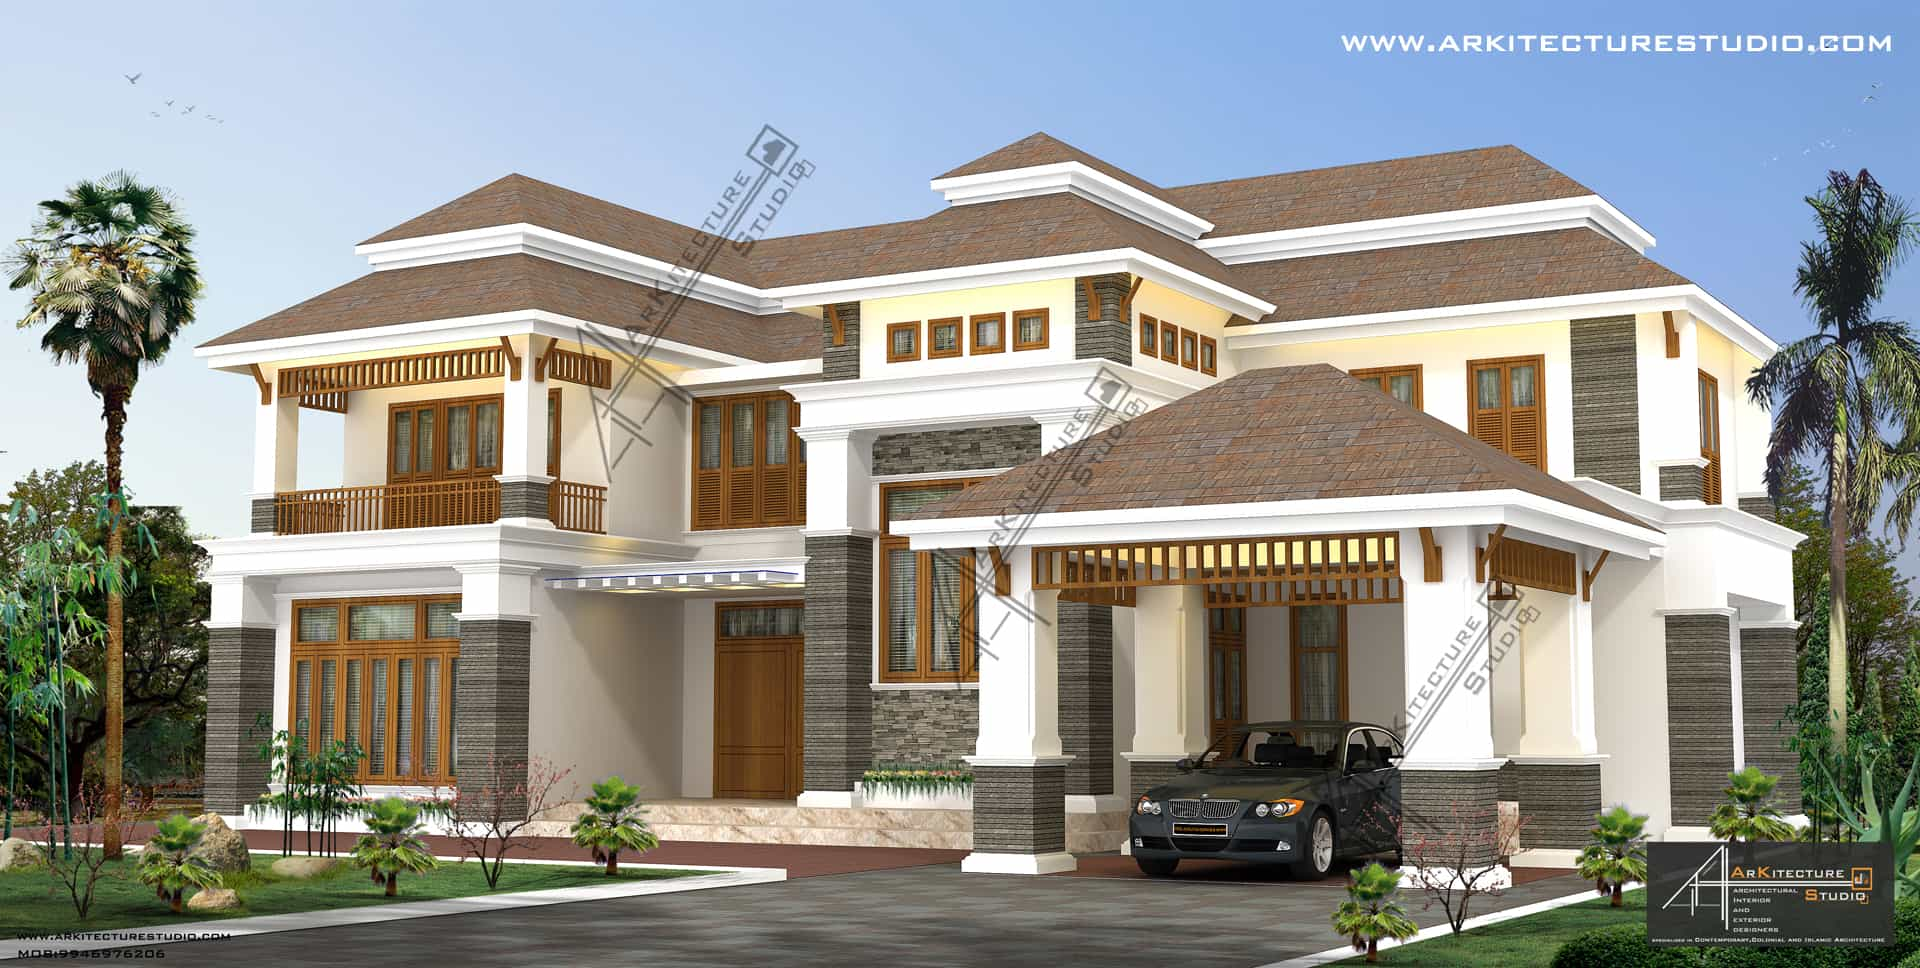 Colonial style house designs in kerala at 3500 sqft 5000 3500 sq ft house plans two stories